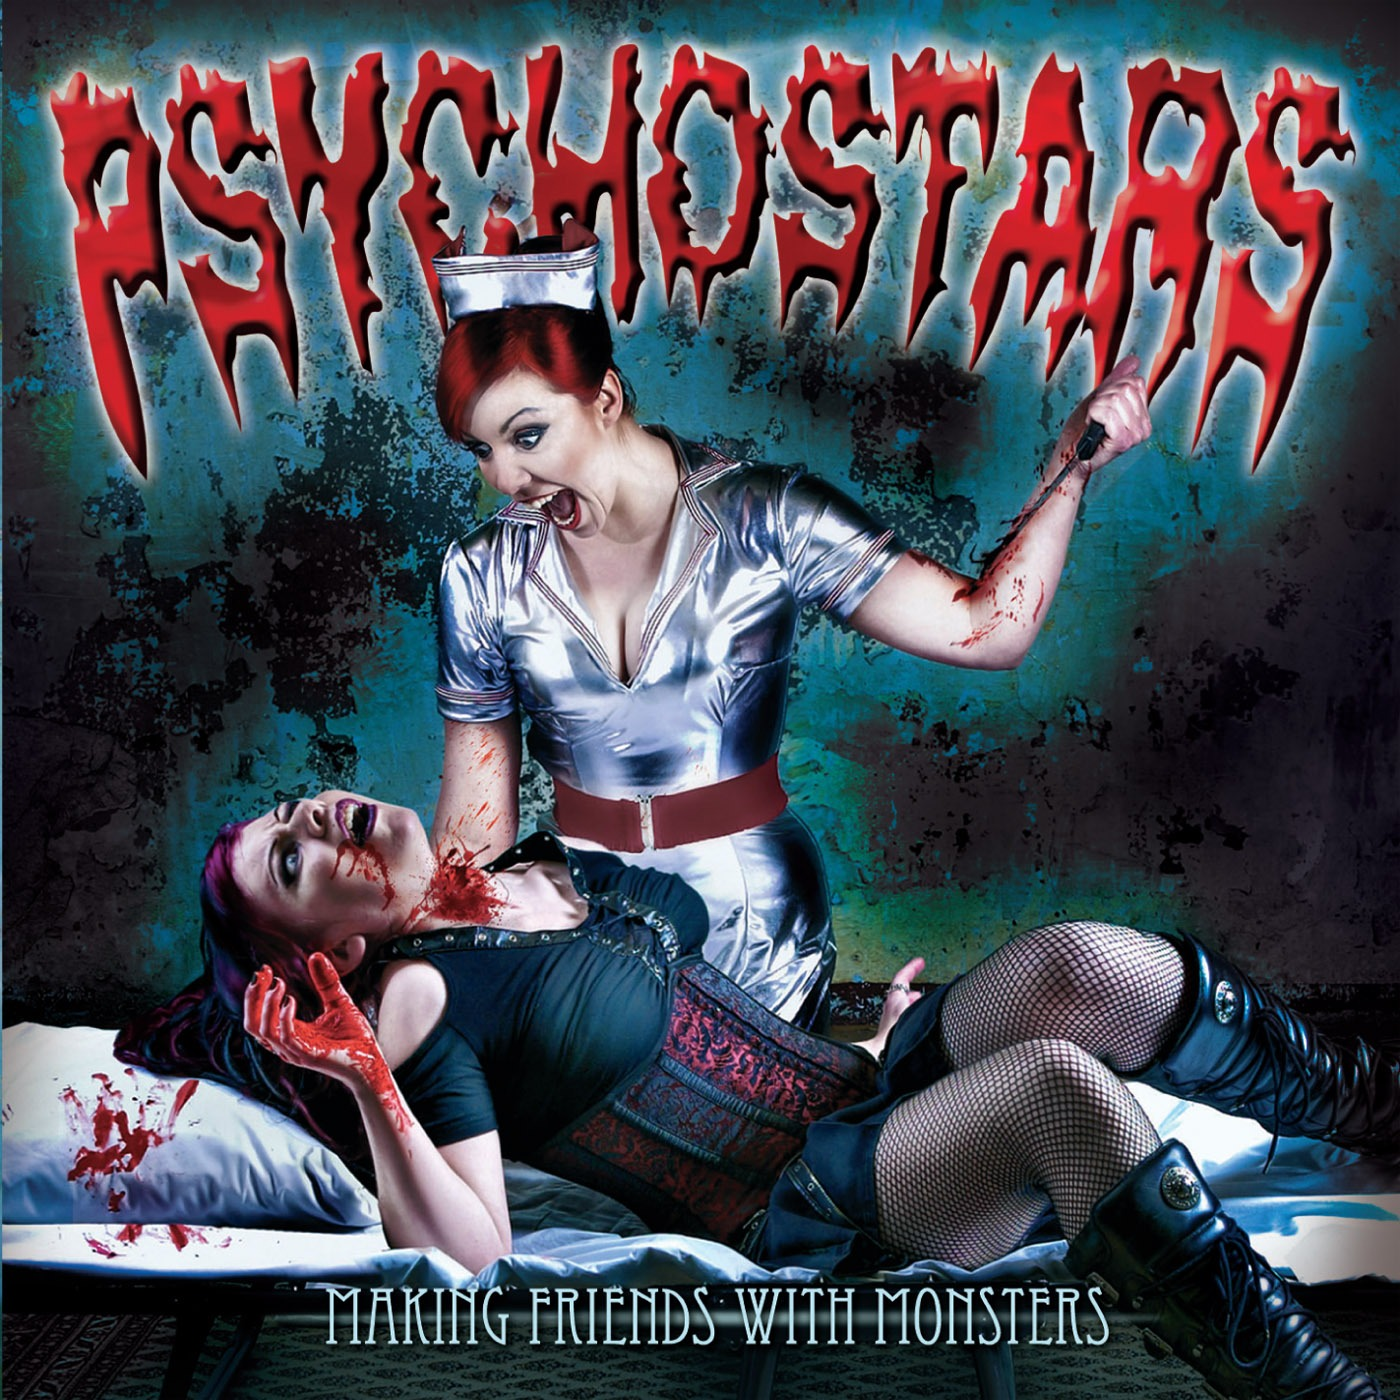 PSYCHOSTARS (Fin) – Making friends with monsters, 2011